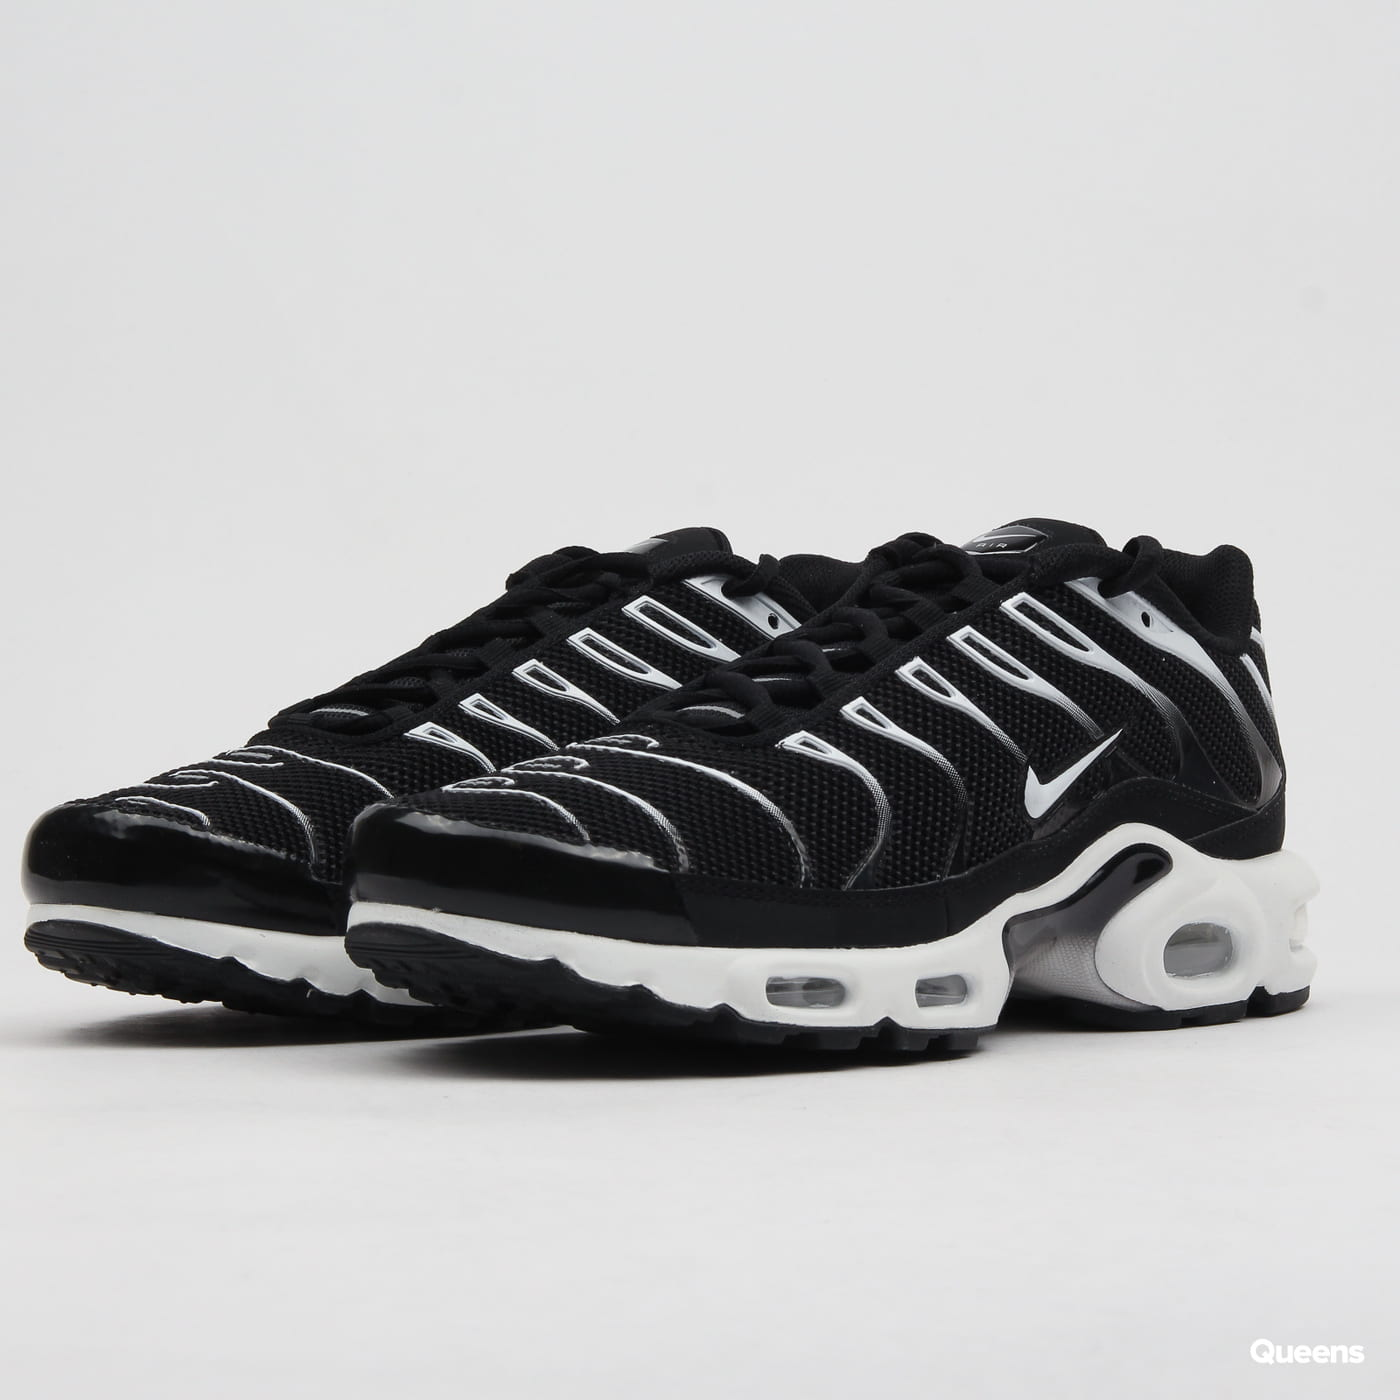 e65a04f7d3 Sneakers Nike Air Max Plus black / white - black (852630-038) – Queens 💚